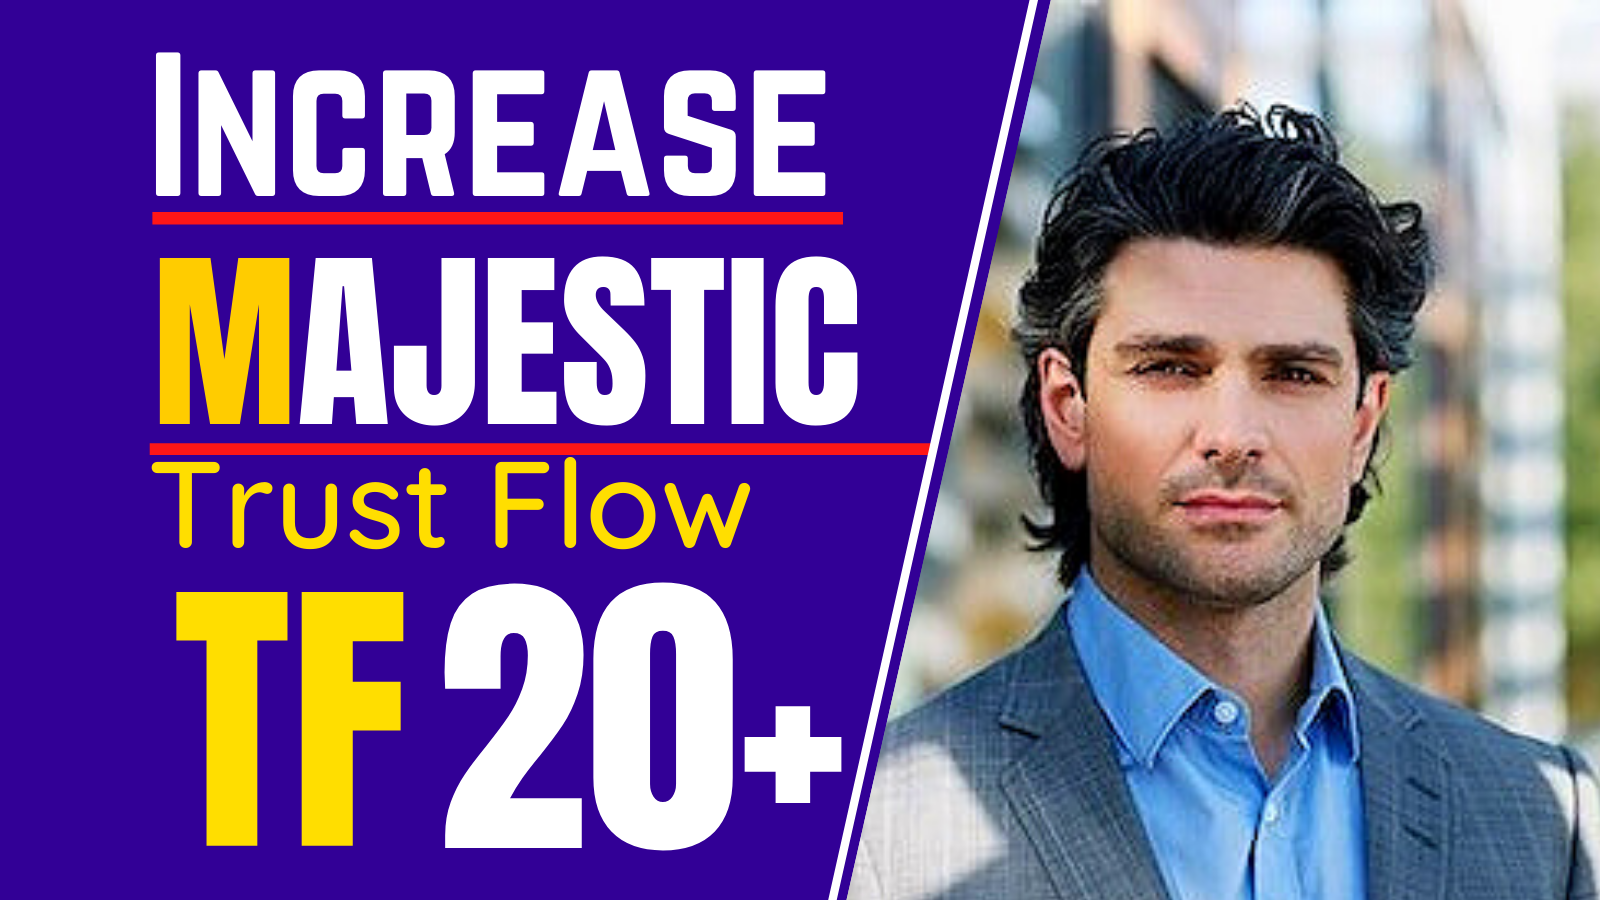 I will increase your majestic trust flow 35 plus,  increase tf